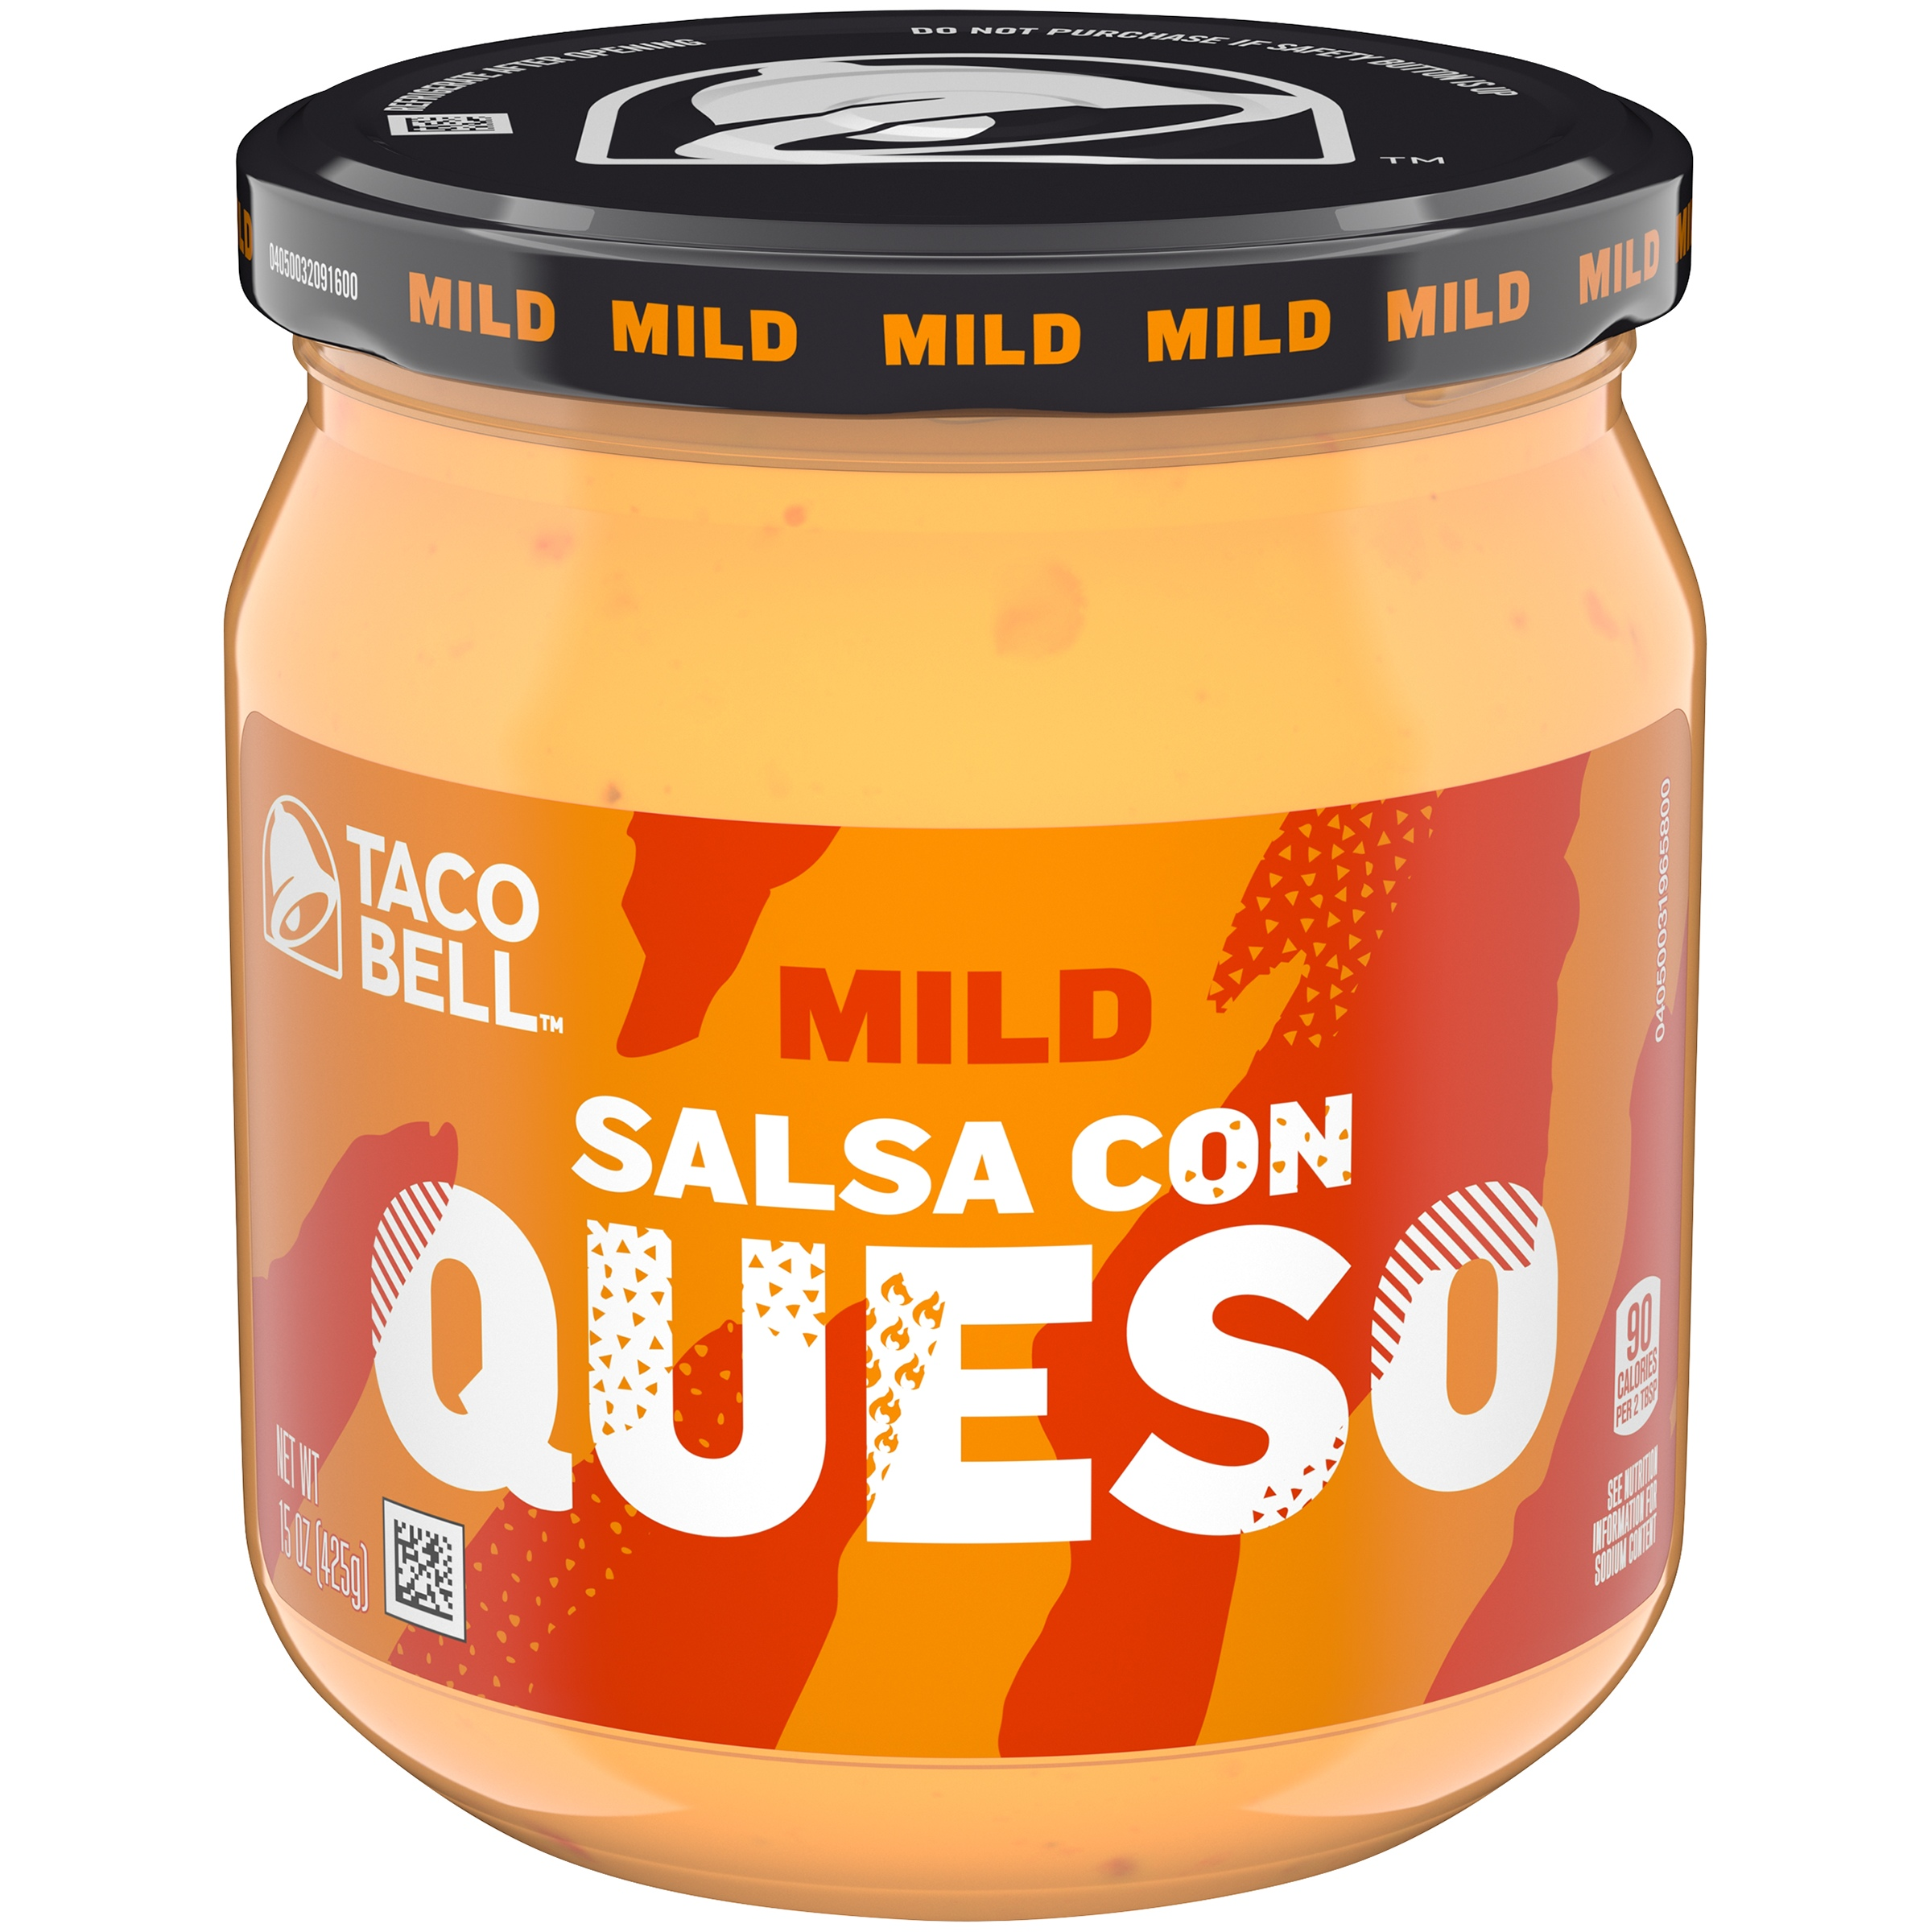 Taco Bell Mild Salsa Con Queso Cheese Dip 15 oz. Jar